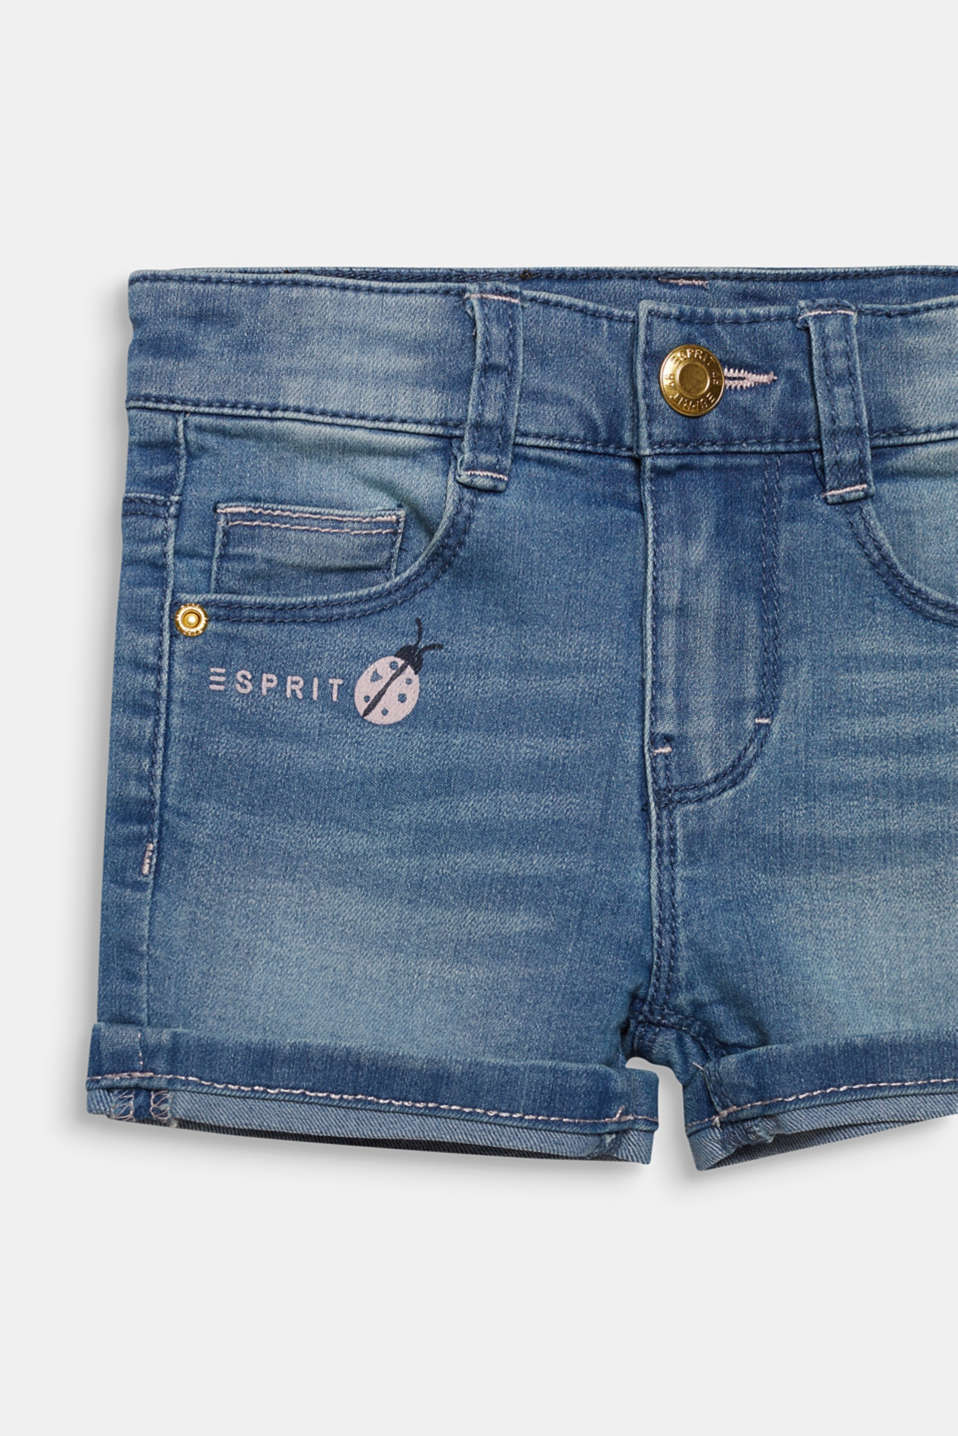 Denim shorts with turn-up hems, adjustable waistband, LIGHT INDIGO D, detail image number 2